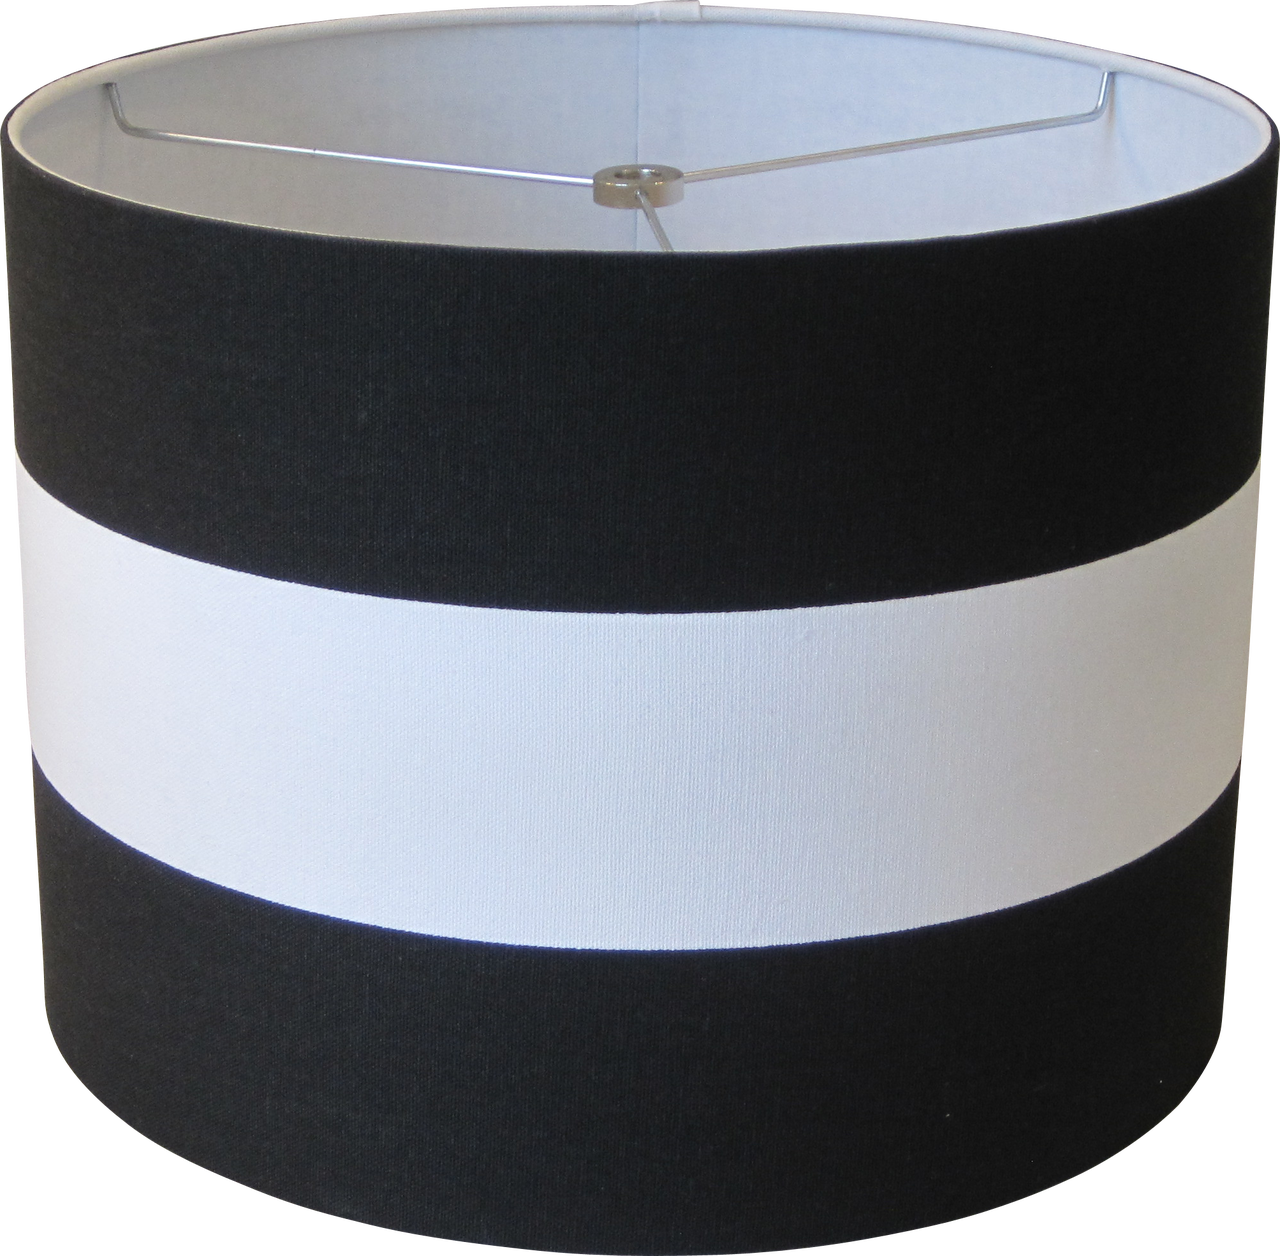 Lampshapes black and white striped lamp shade drum 8499 lampshapes black and white striped lamp shade drum 8499 with free aloadofball